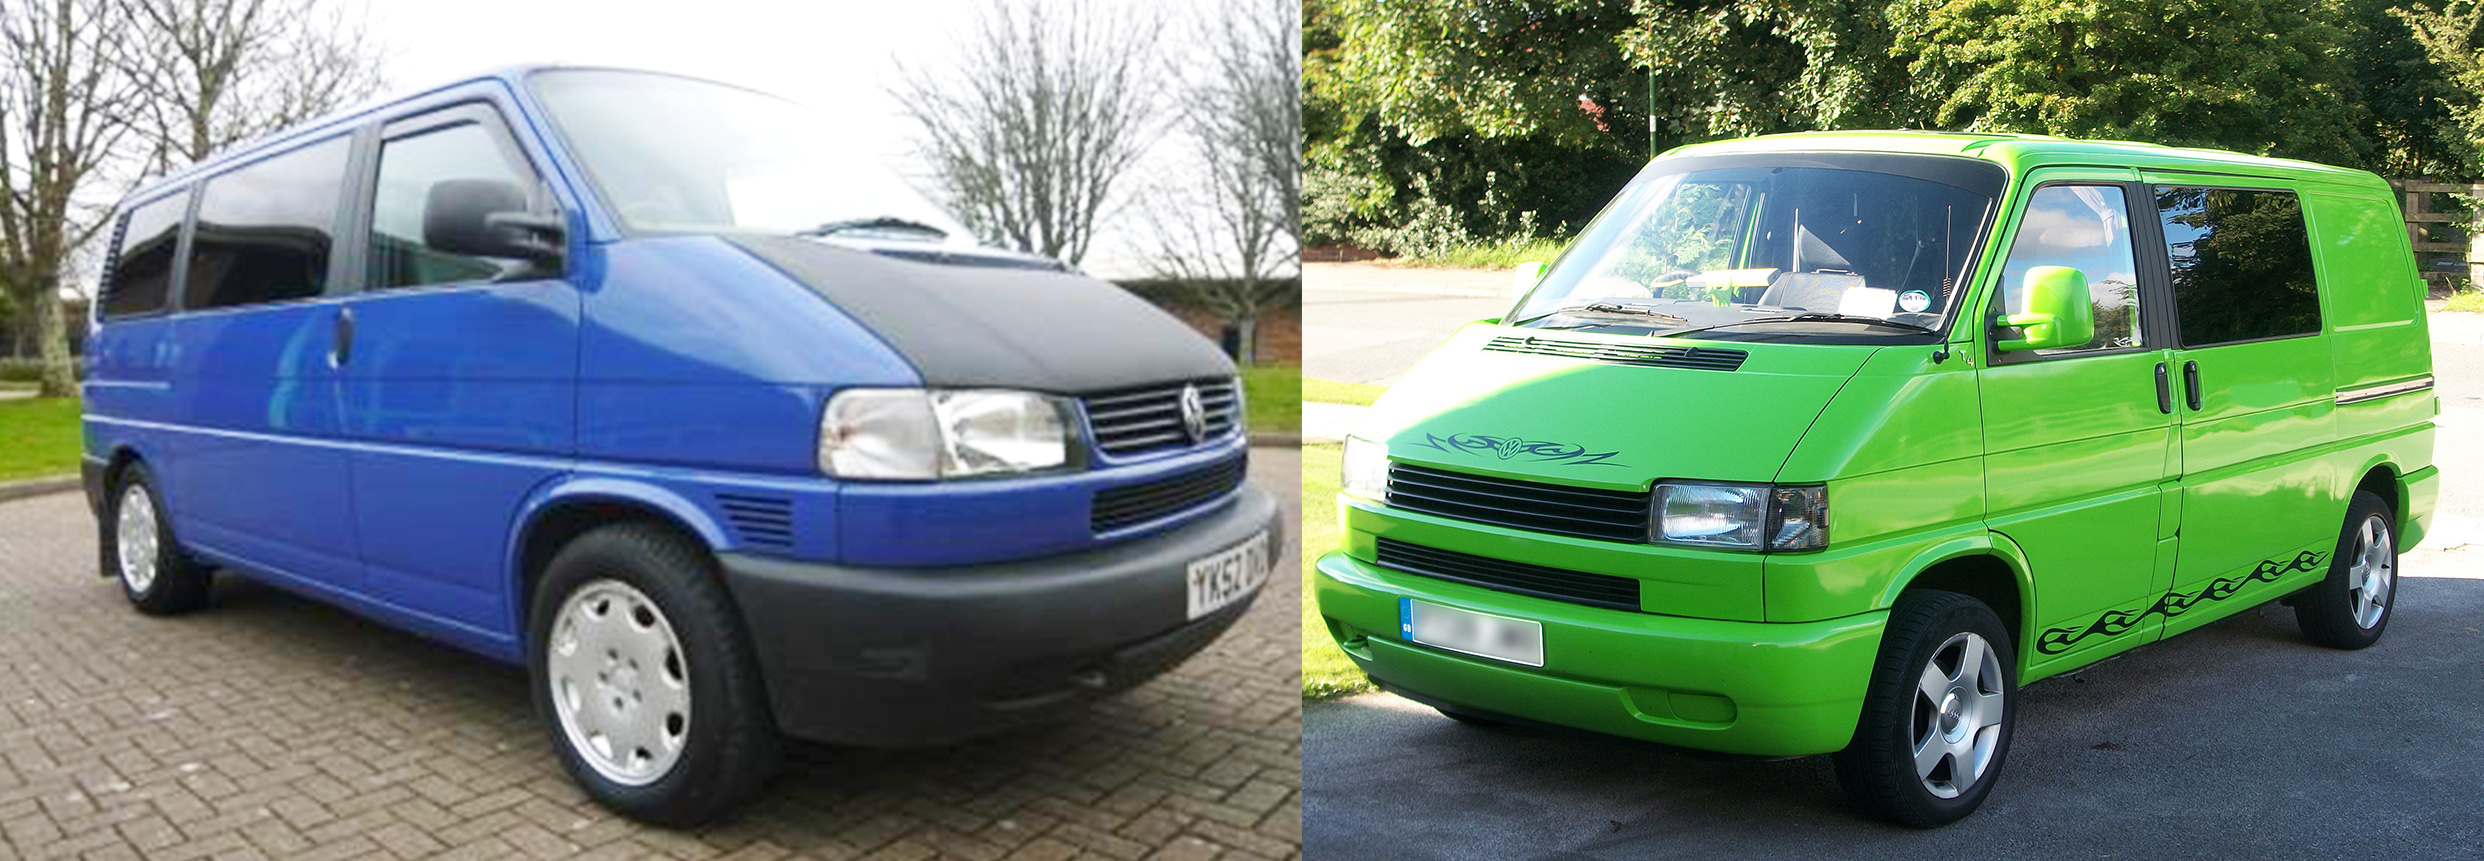 VW Transporter: The Different T's